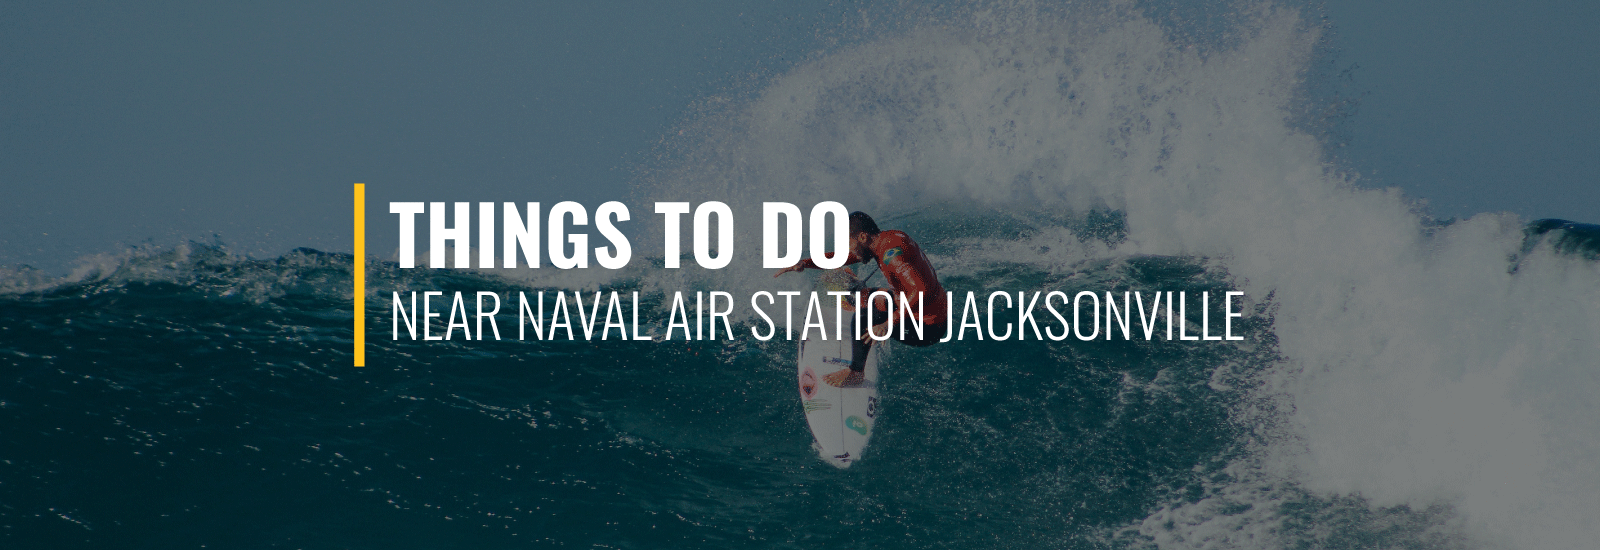 Things to Do Near Naval Air Station Jacksonville